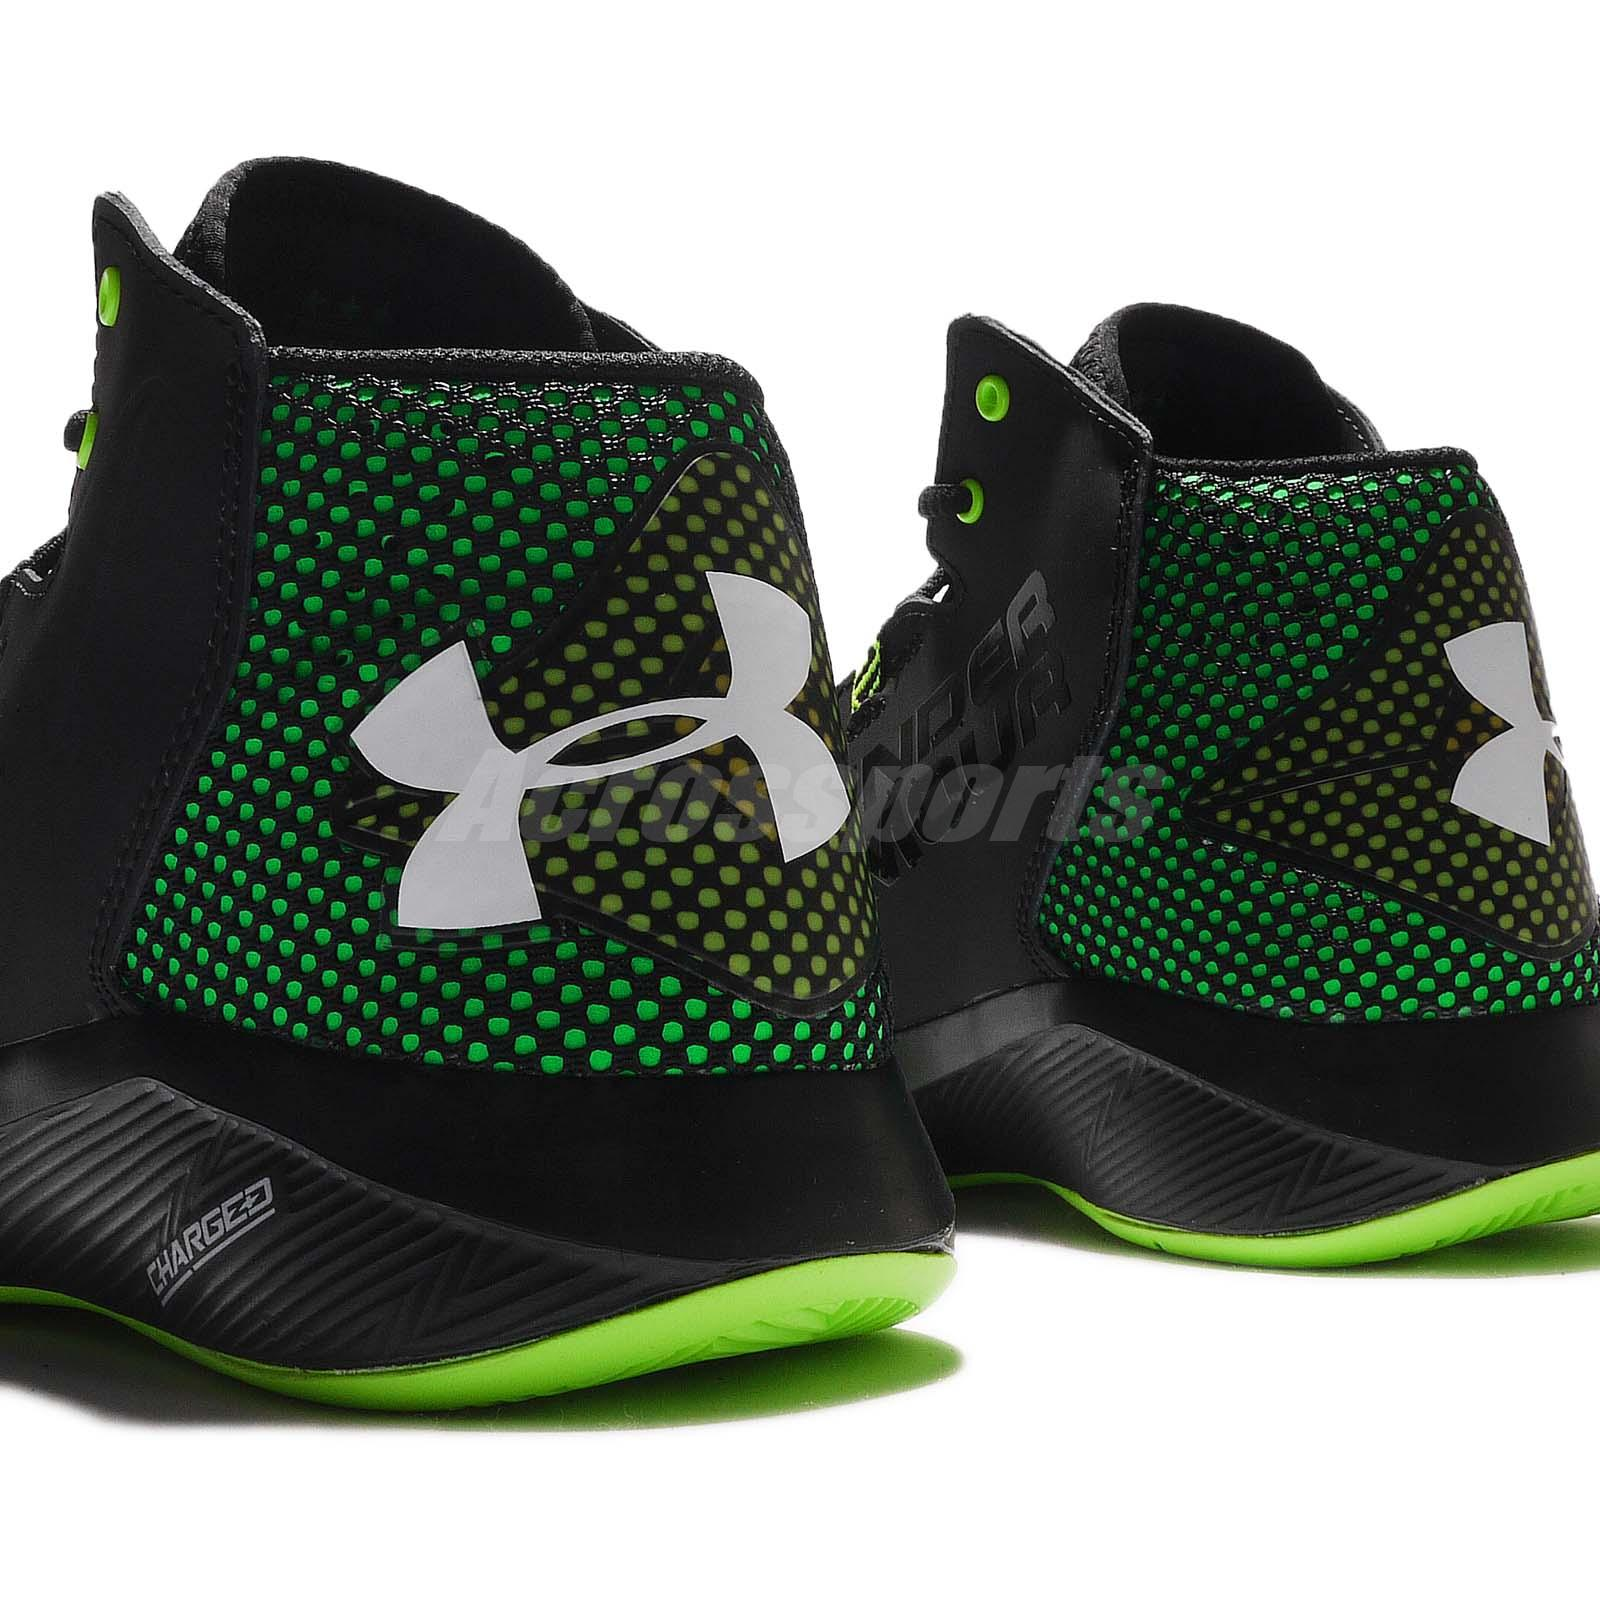 689f8c0f7d17 Cheap under armour basketball shoes green Buy Online  OFF58% Discounted